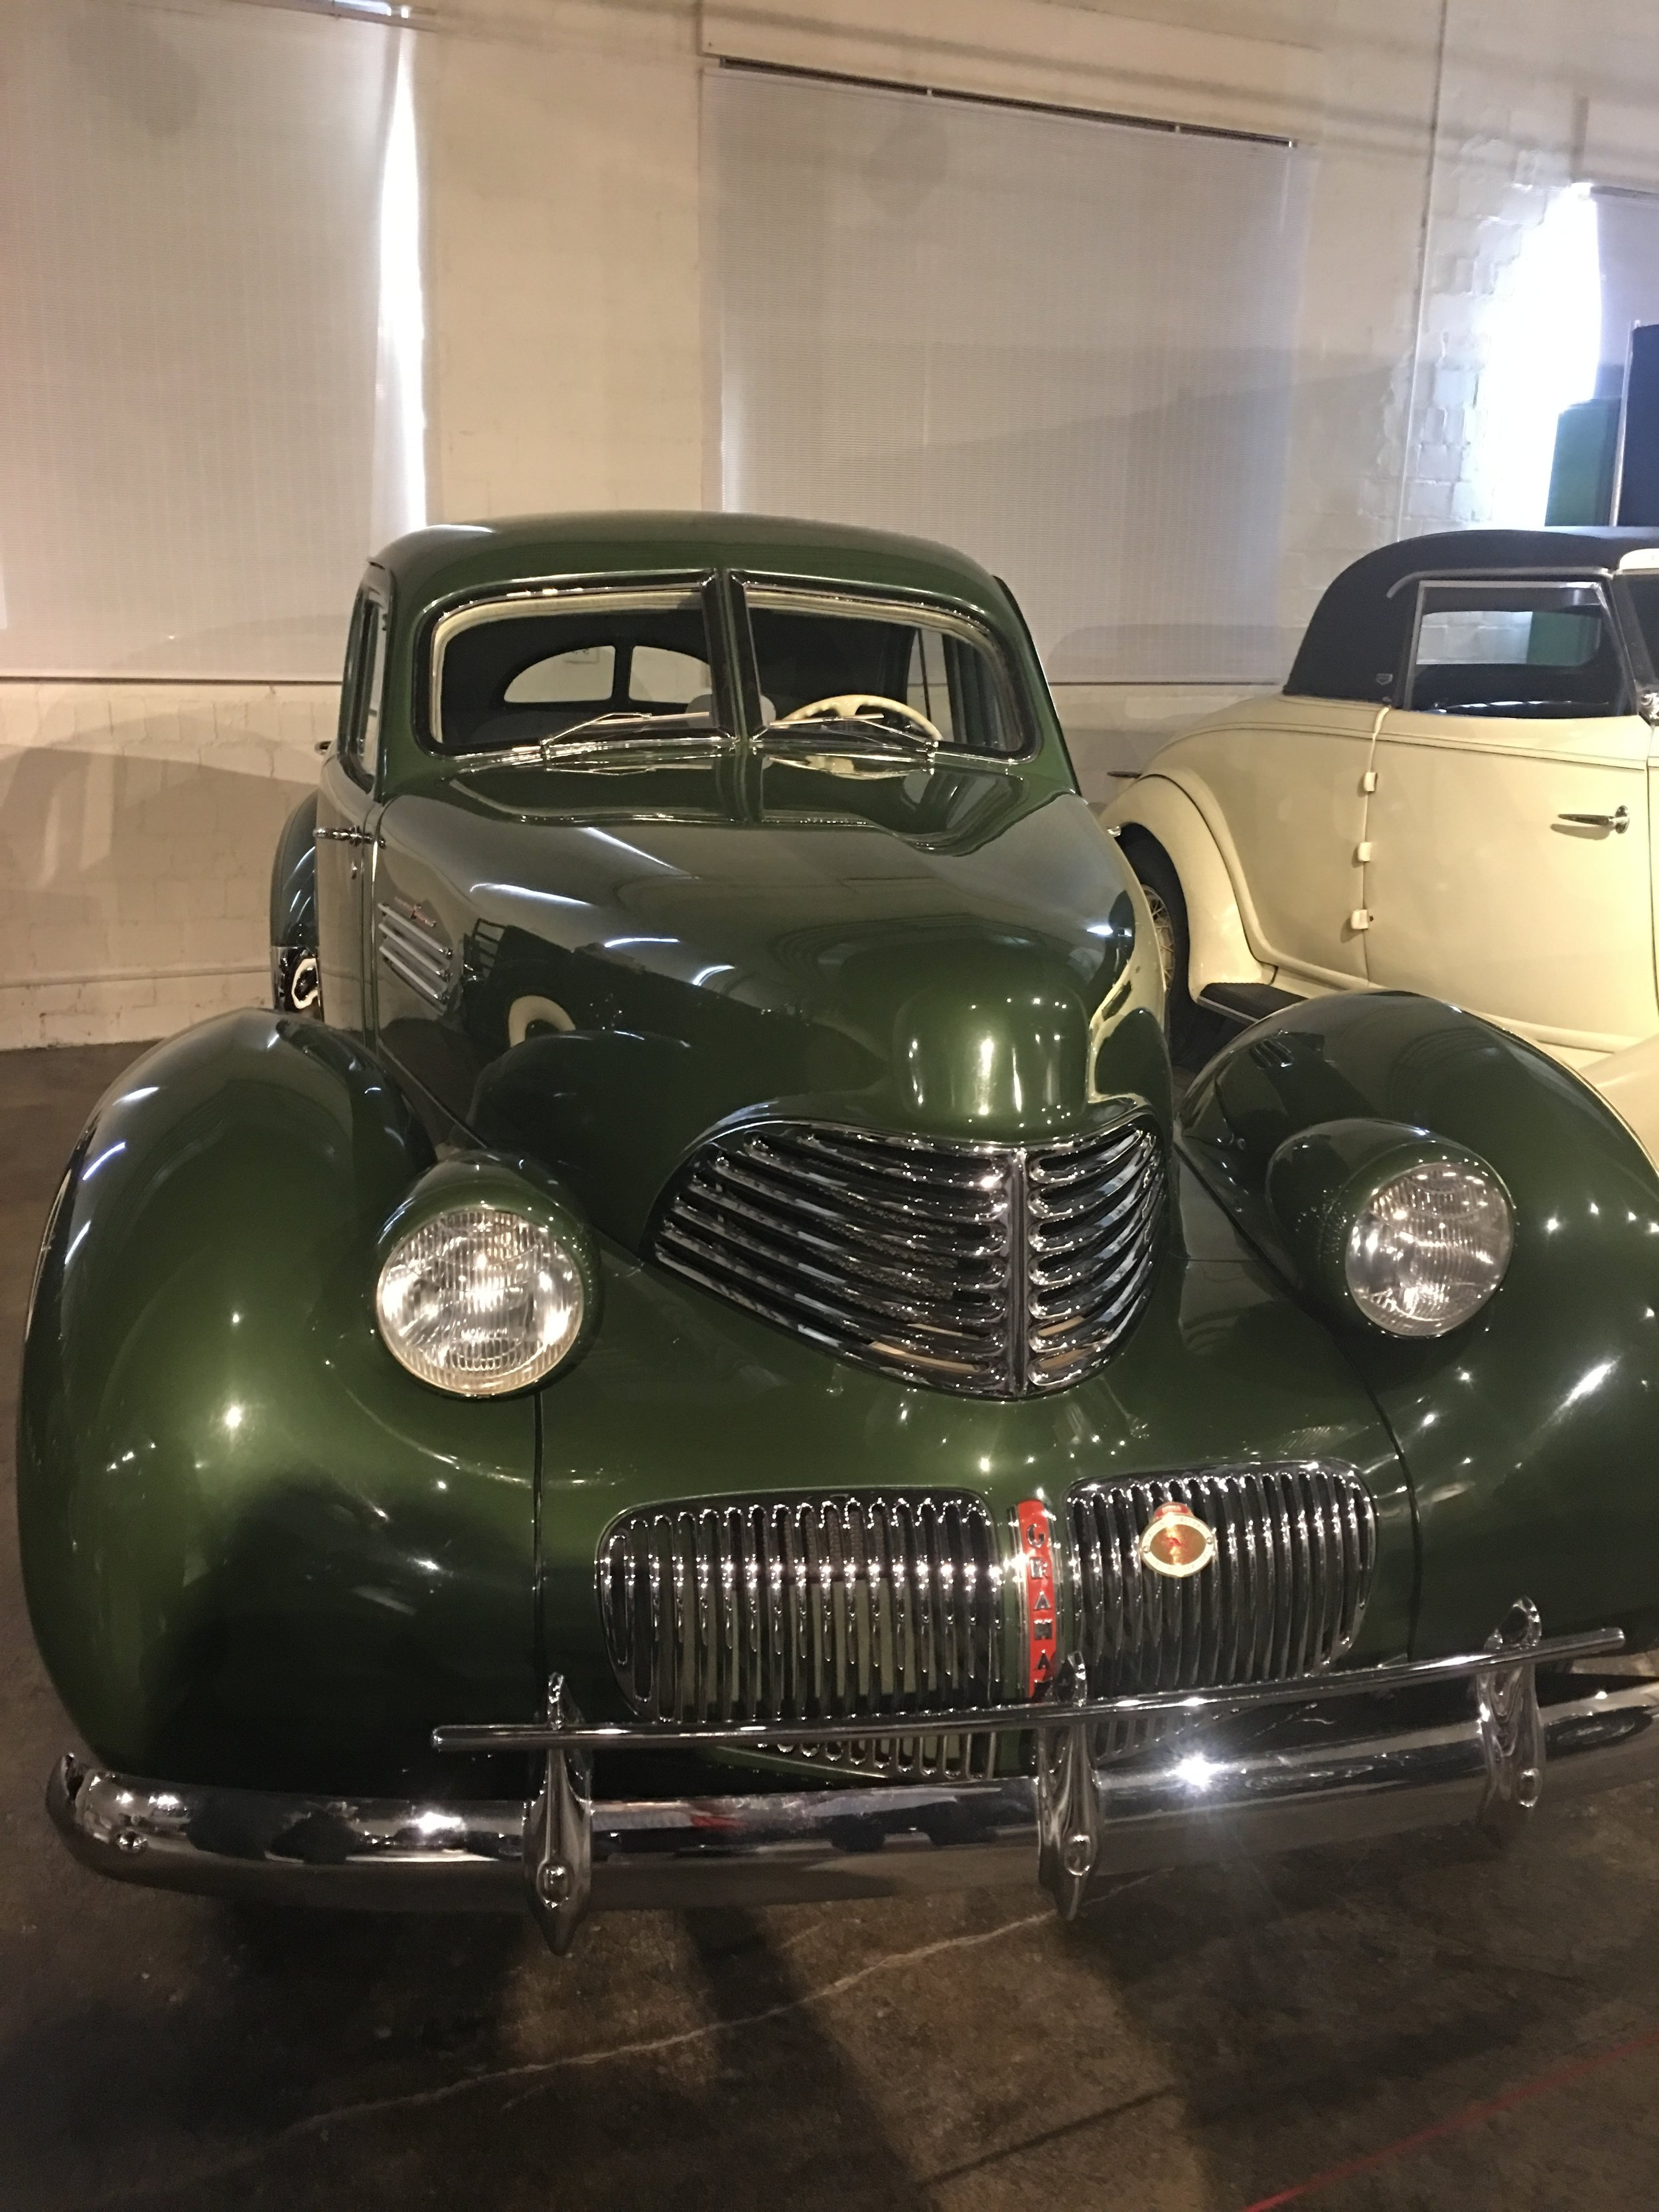 This Graham car was on display in the Special Interest gallery at the Auburn Cord Duesenberg Automobile Museum in Auburn, Indiana.